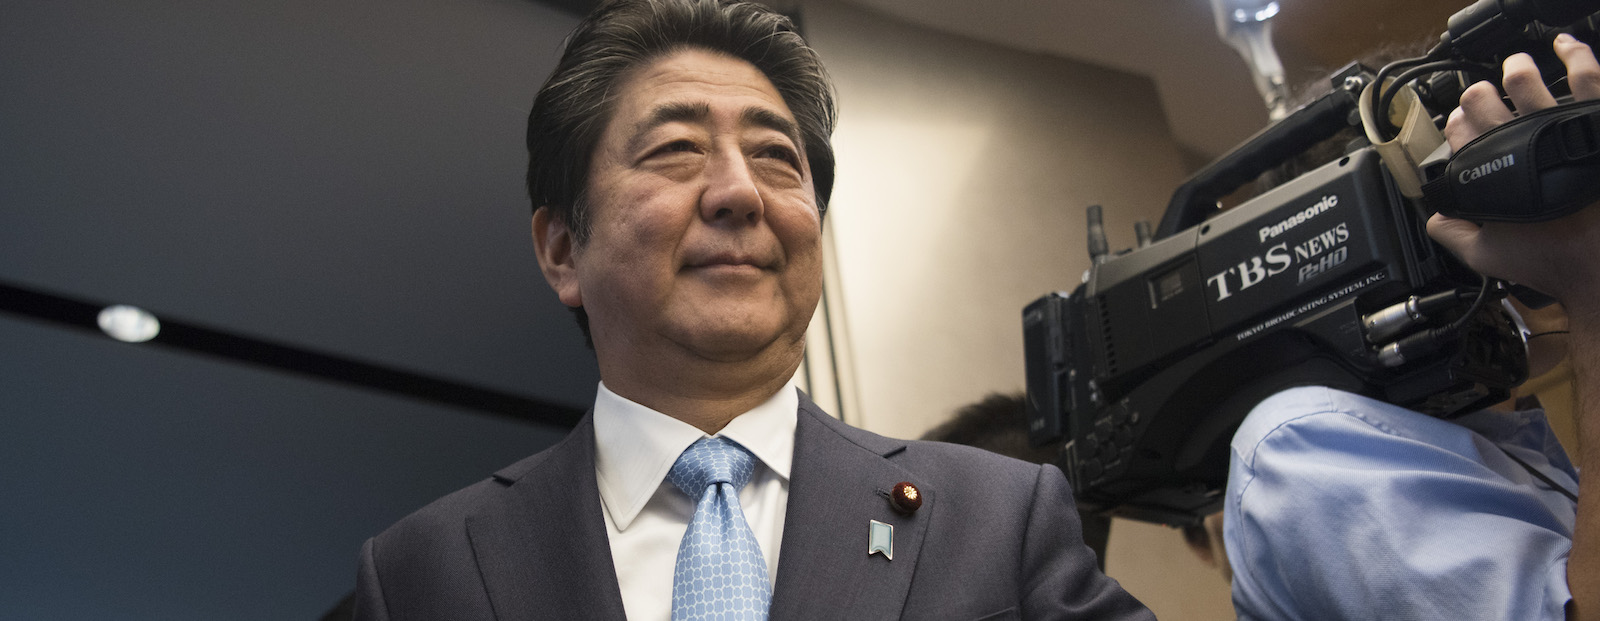 Japanese Prime Minister Shinzo Abe (Photo: CJCS/ Flickr)